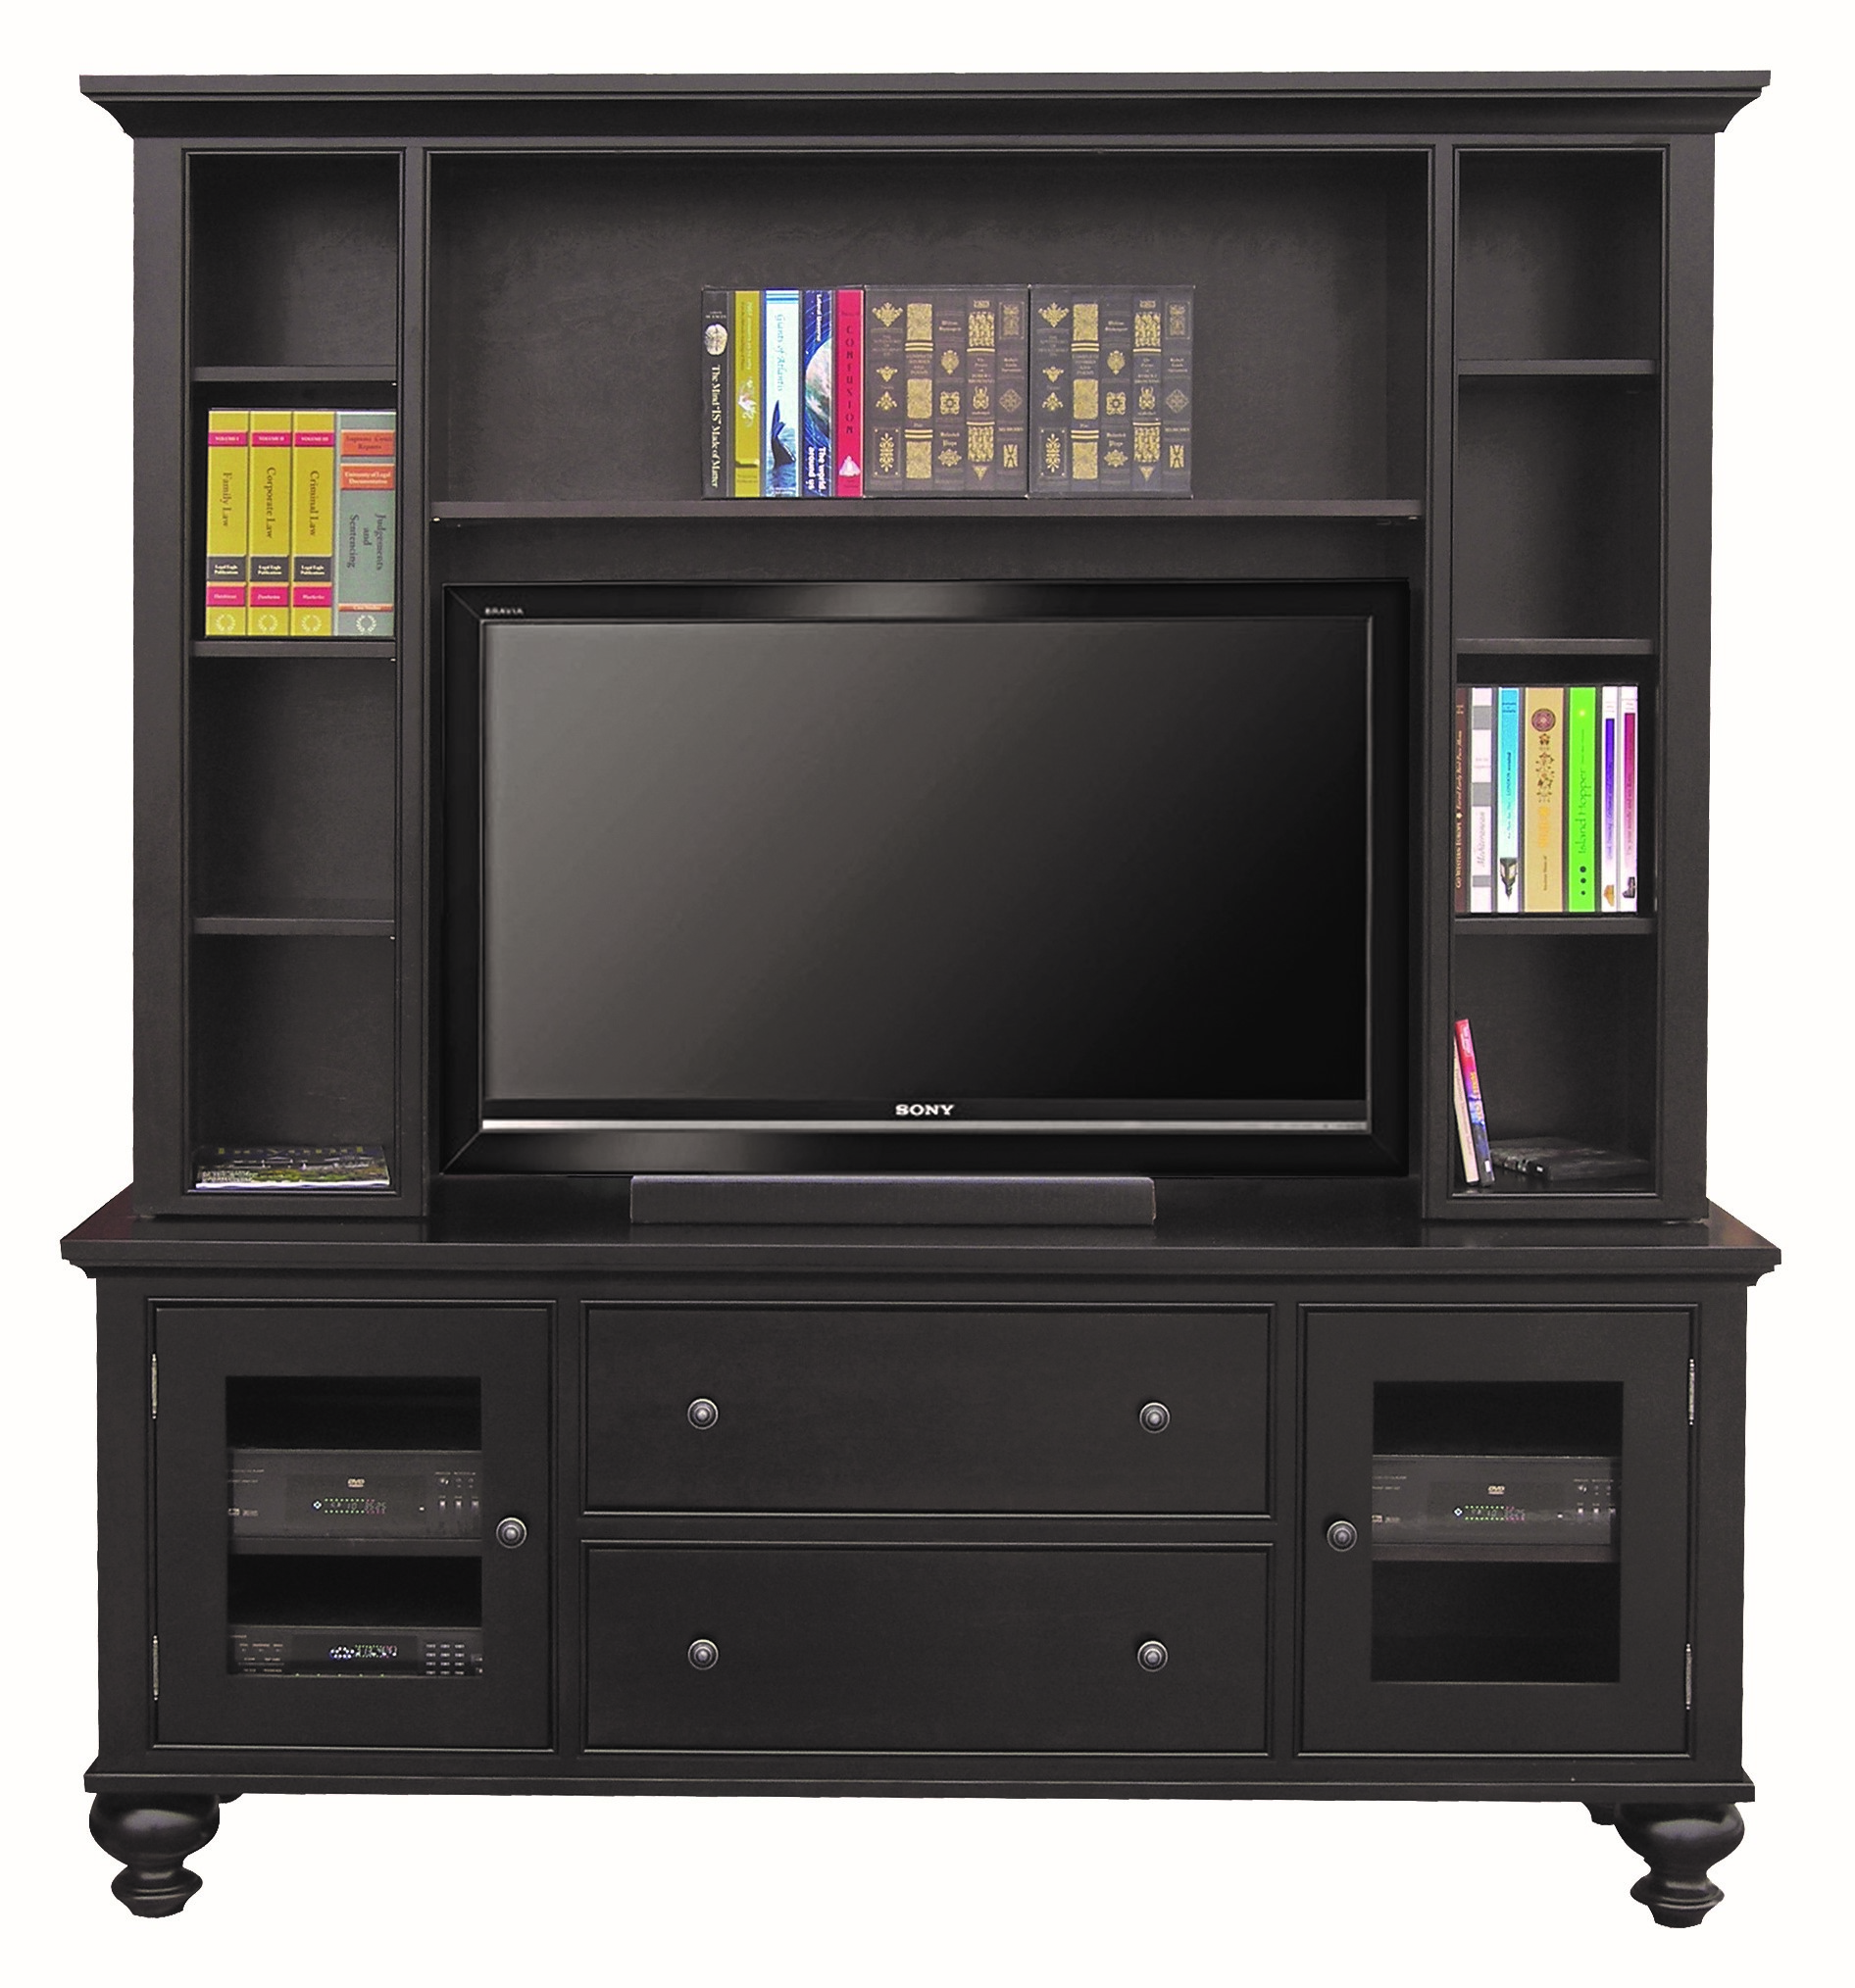 Georgetown-84-HDTV-Unit-2.jpg